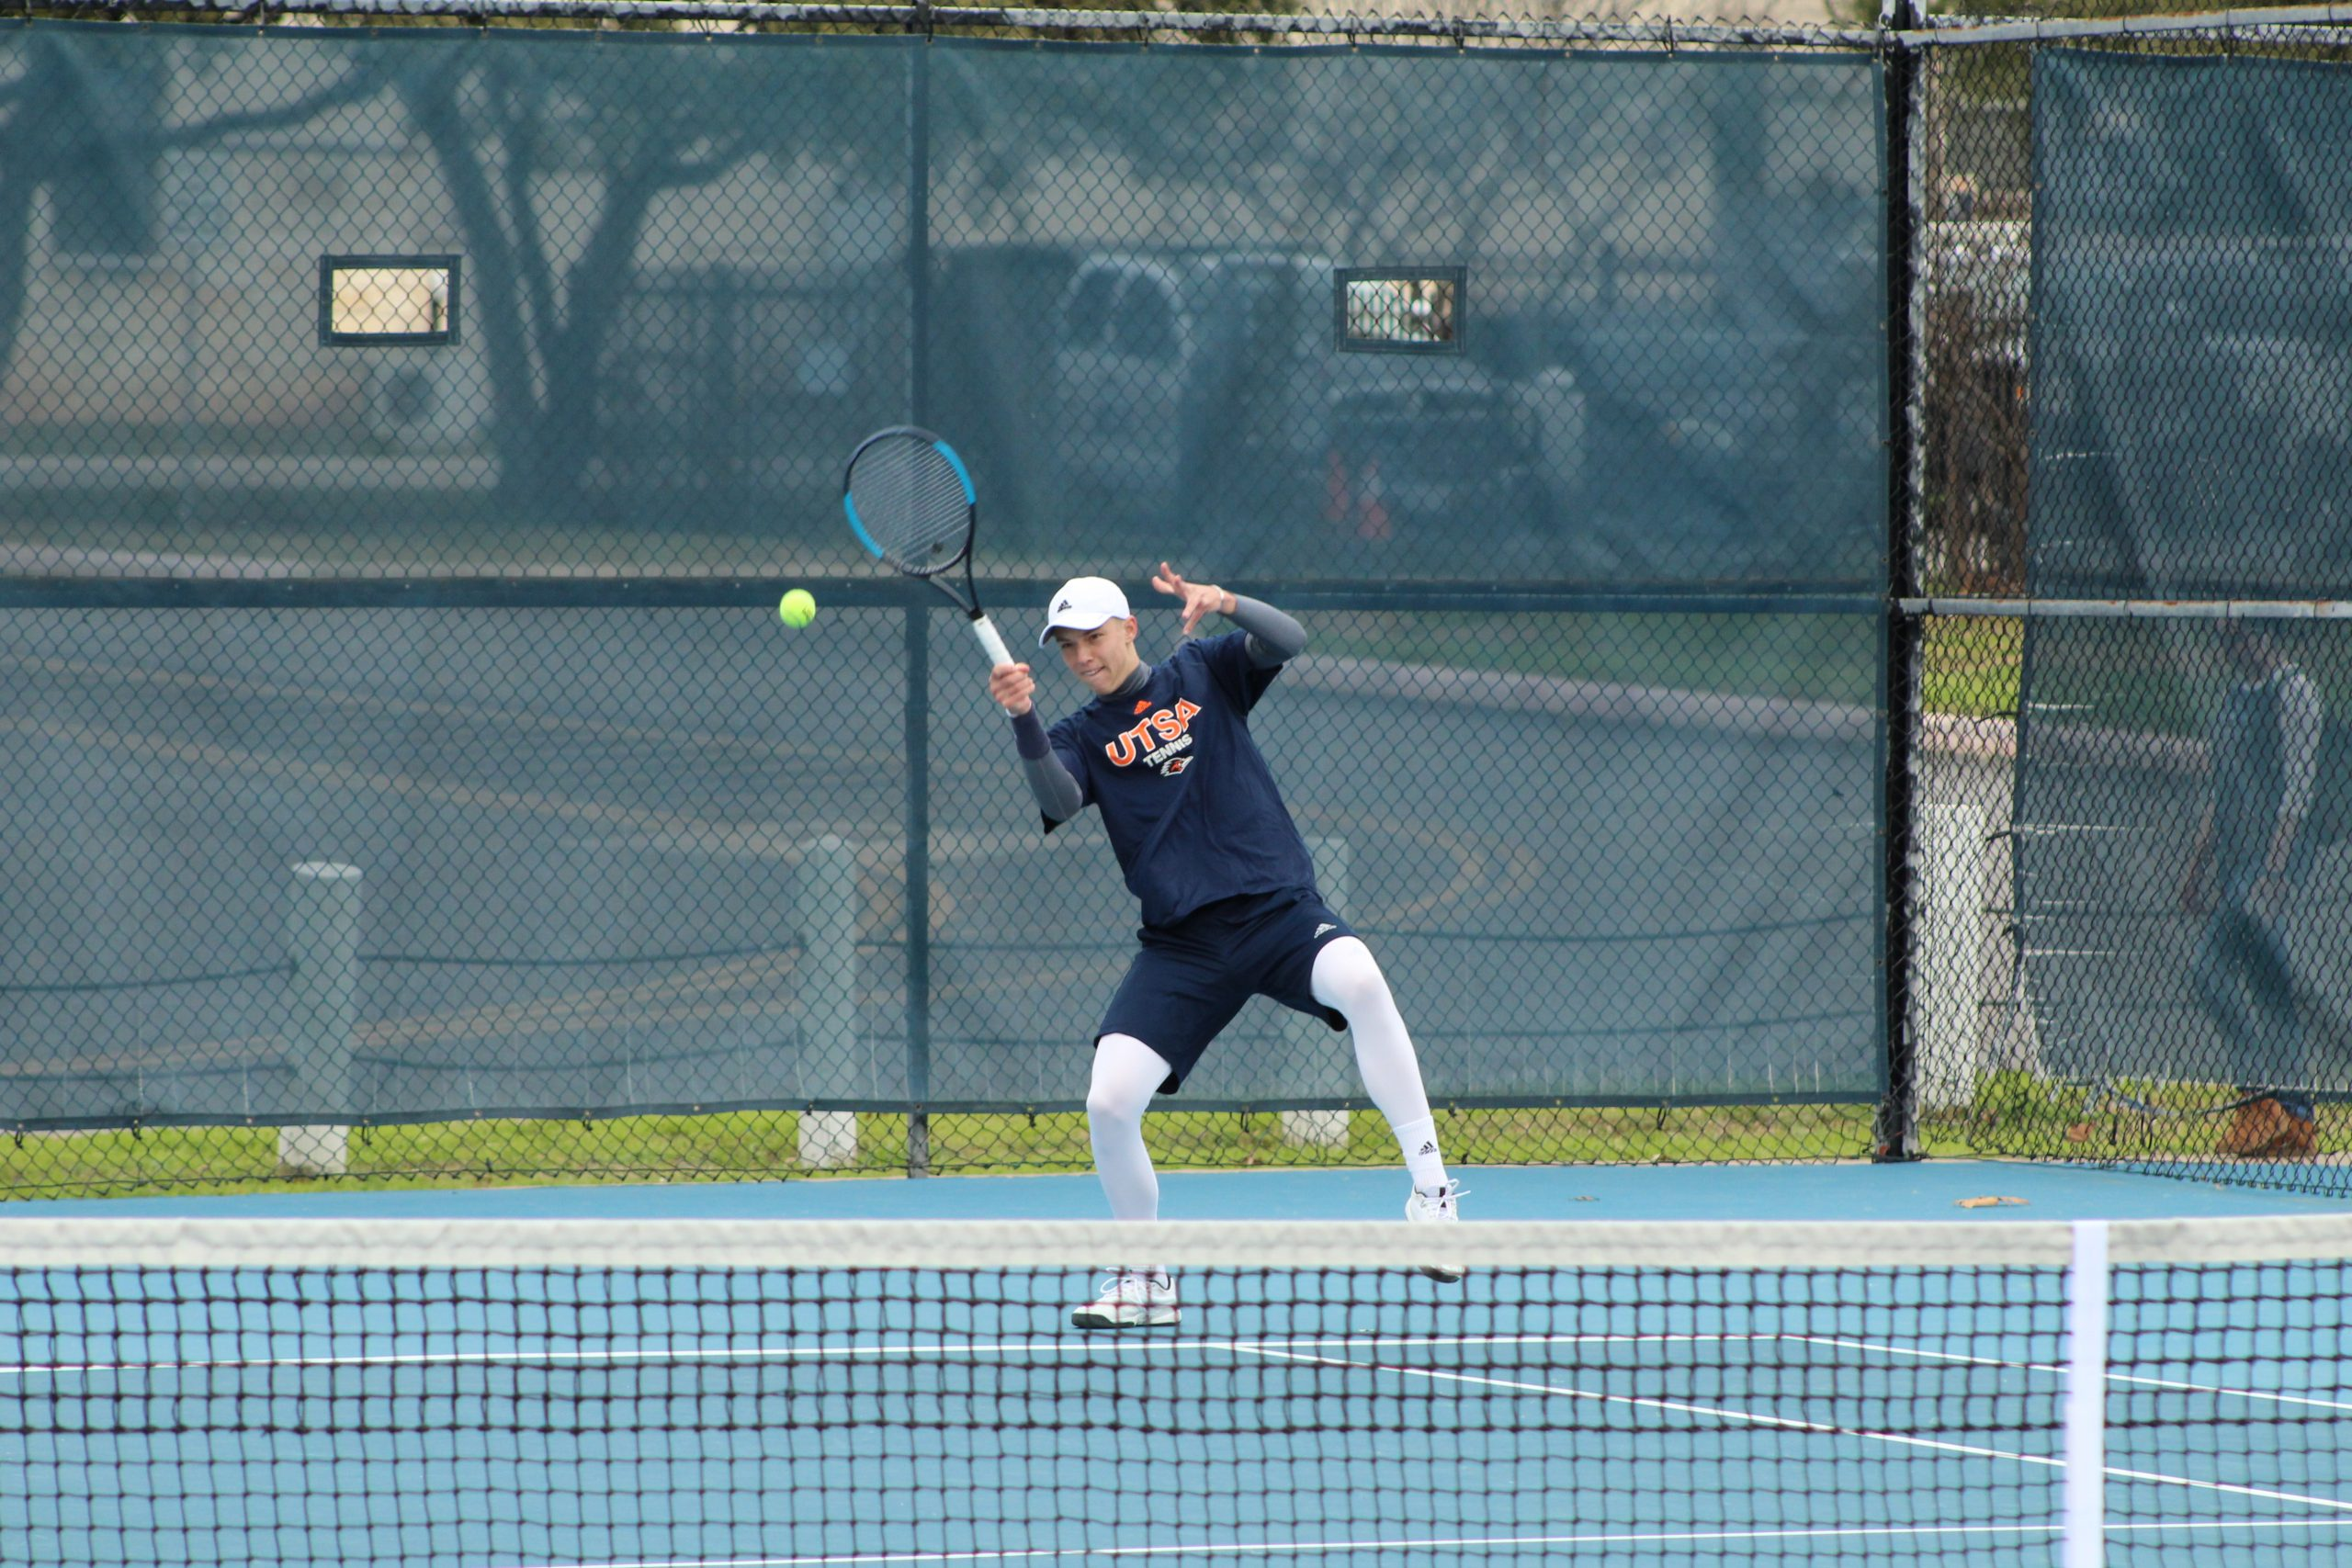 Juri Reckrow receives a serve against his opponent. Photo by Ethan Gullet